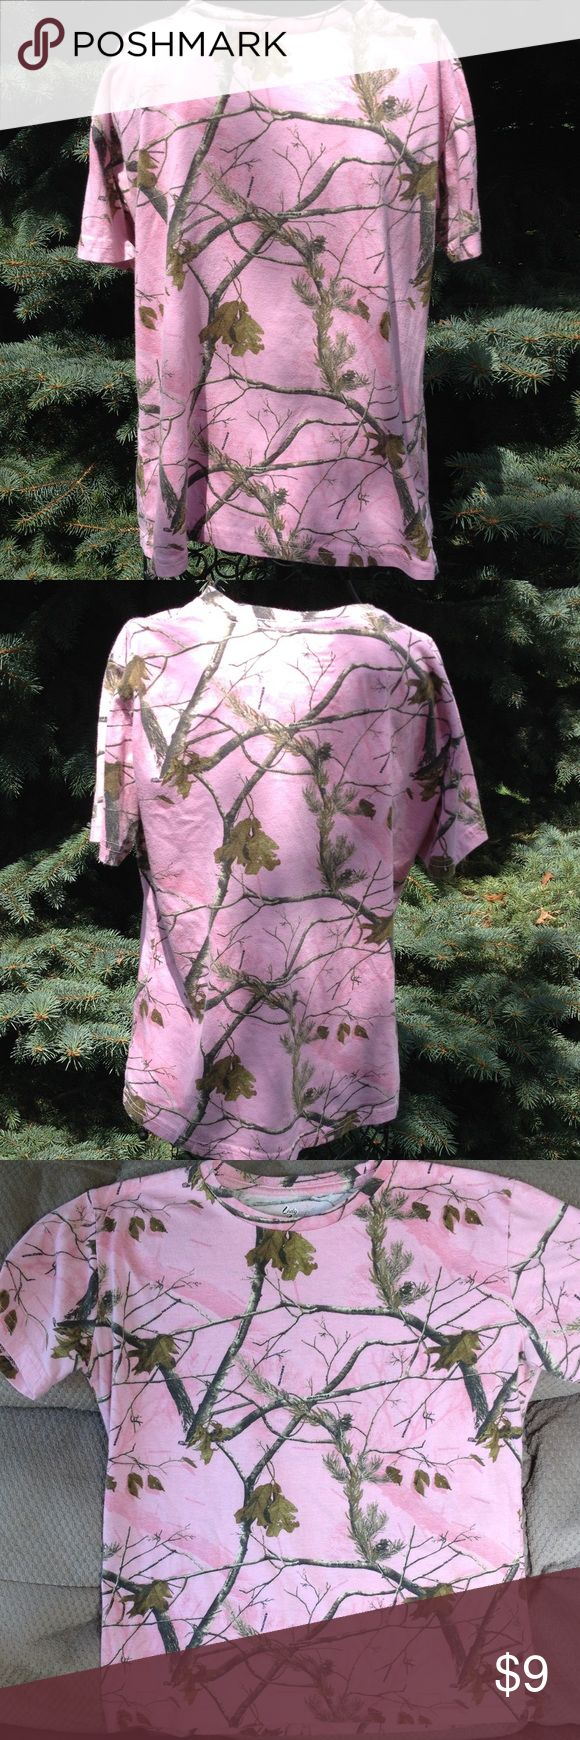 """Short sleeve Lady Bell pink camo top Gently worn. Stretchy Cotton & polyester. Length is 23"""", across front is 20"""". Lady Bell Tops Tees - Short Sleeve"""